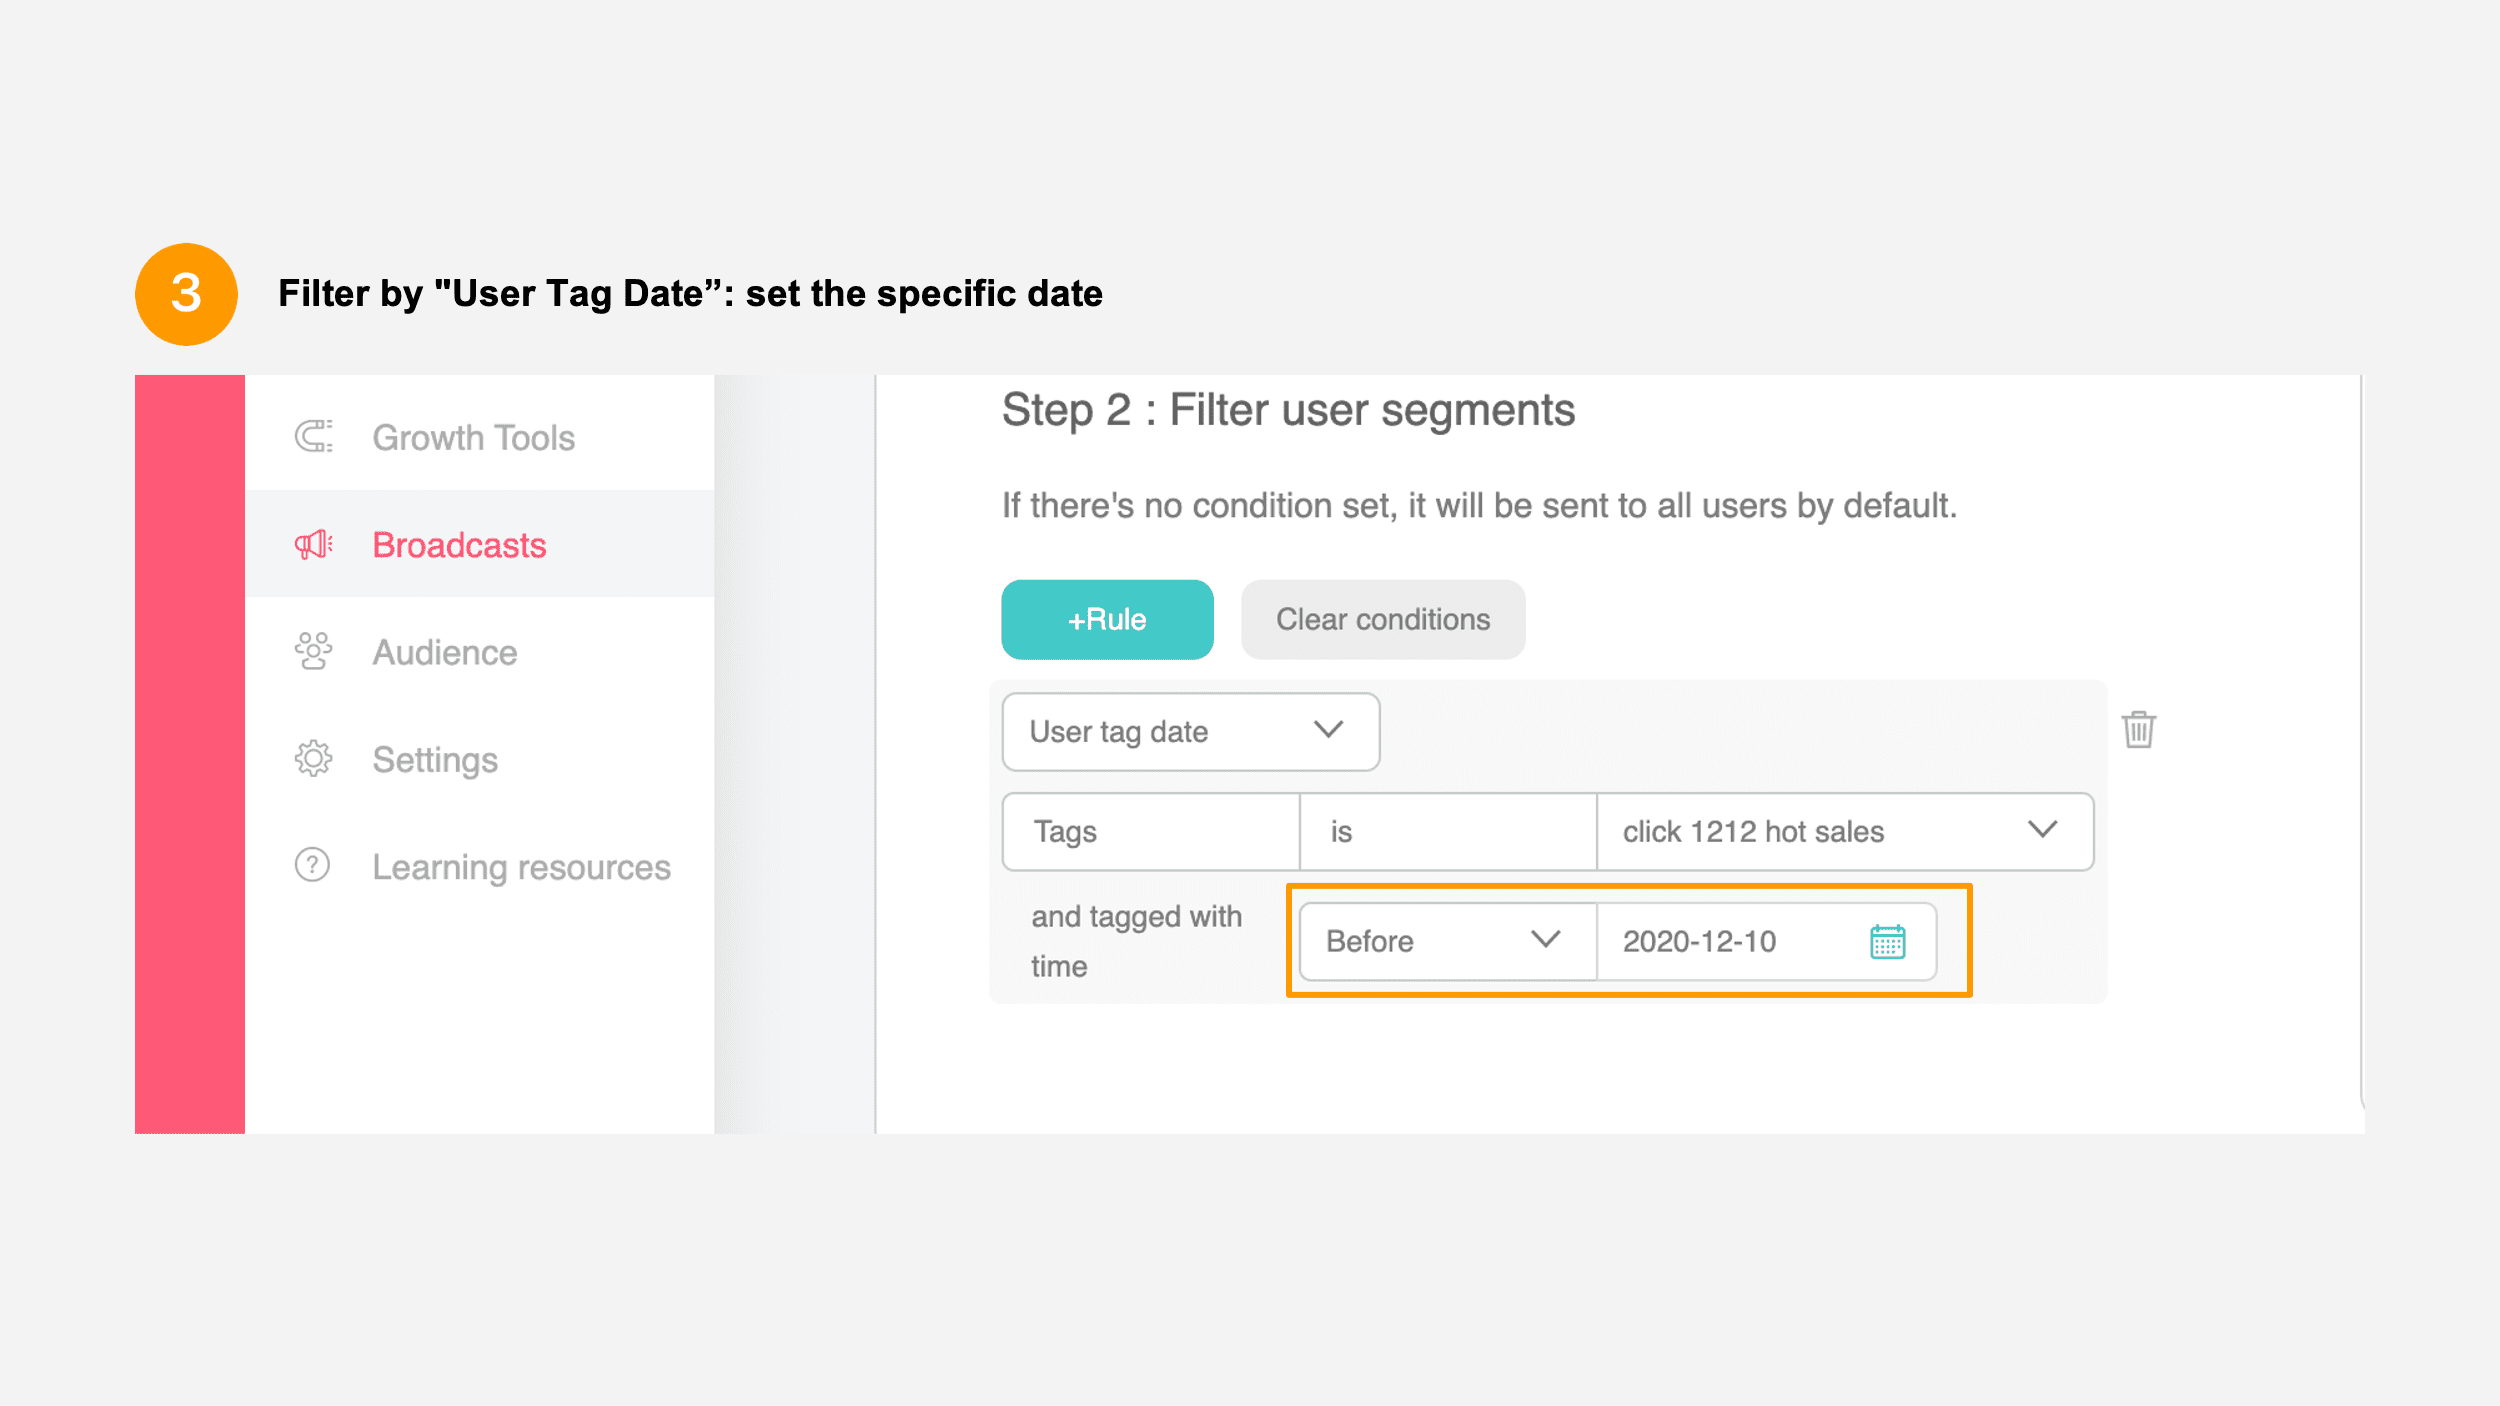 User tag date filter